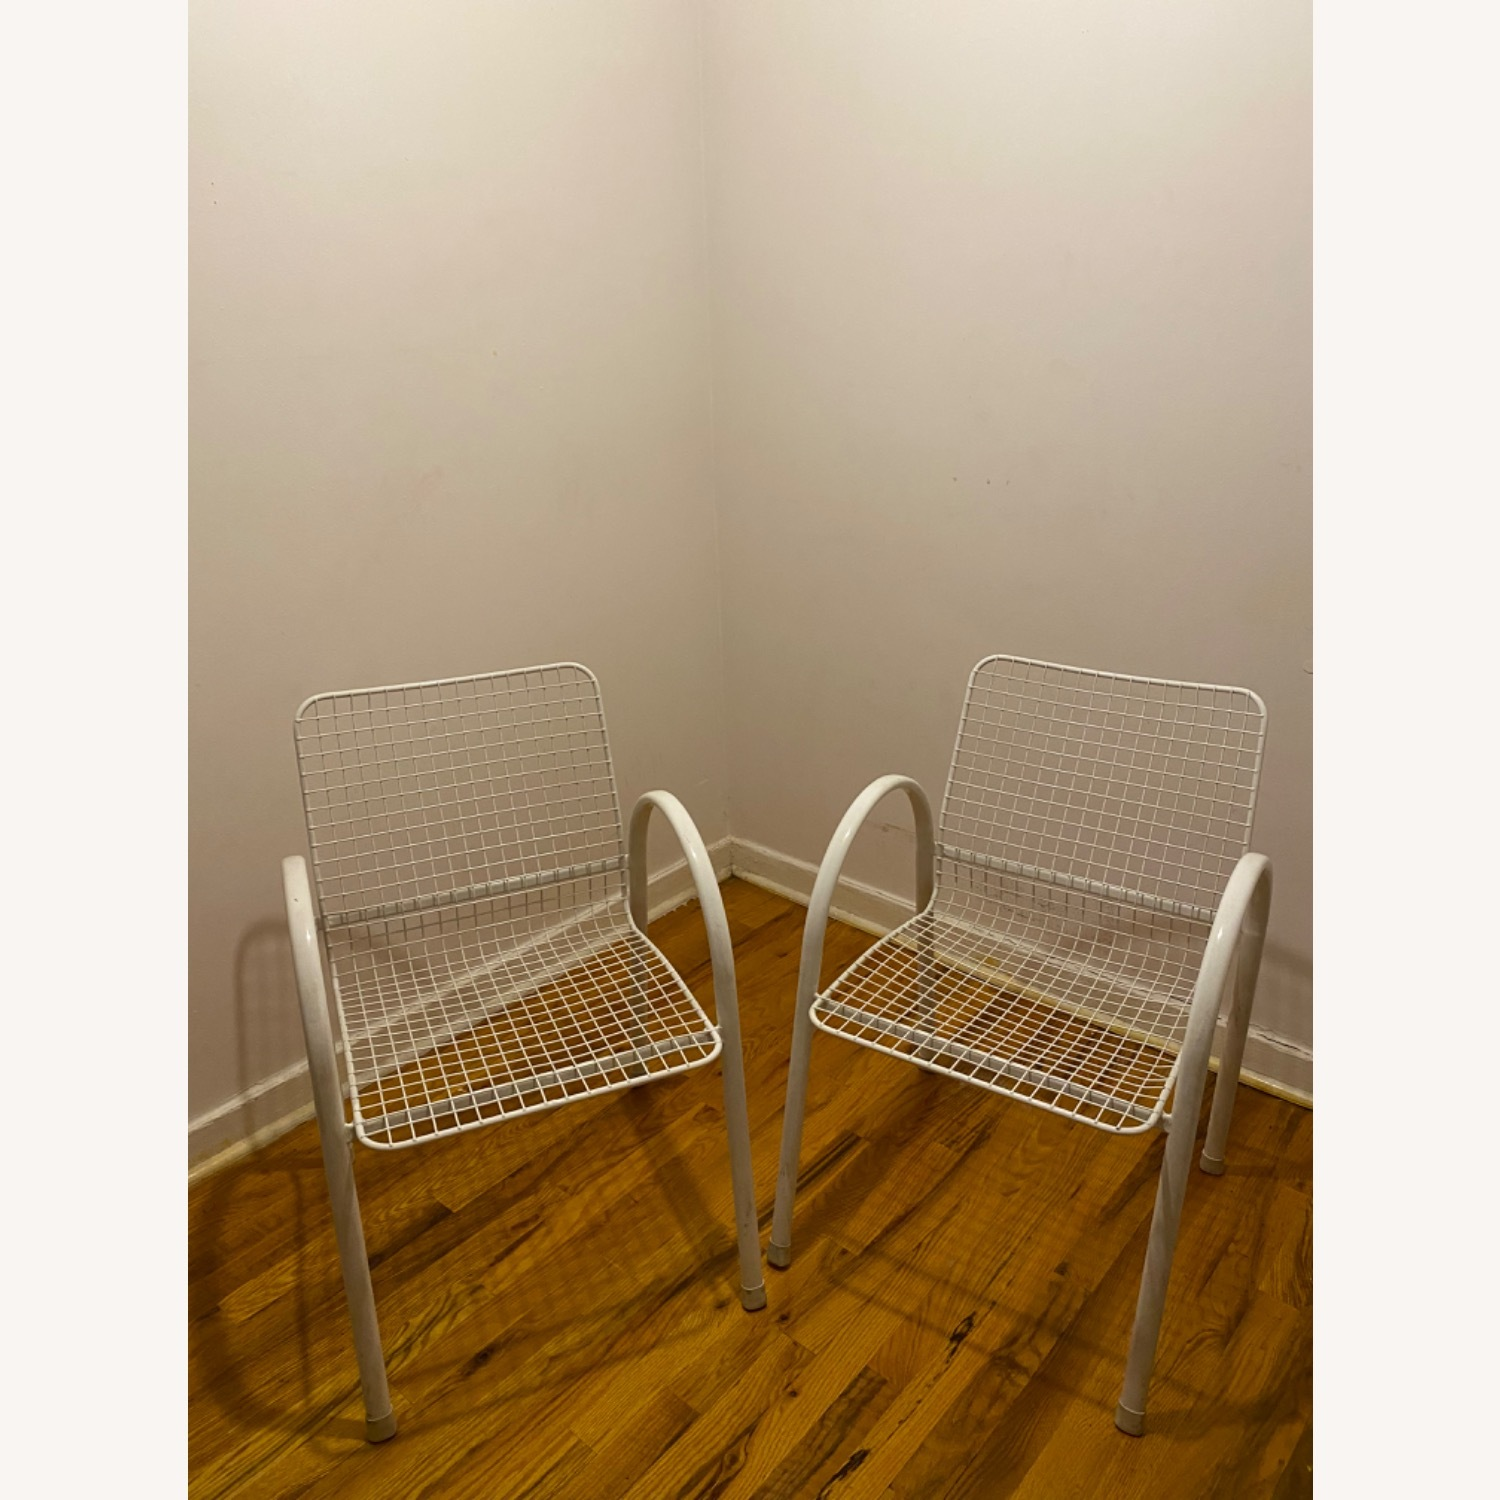 Vintage Garden Chairs With Seat Covers - image-1